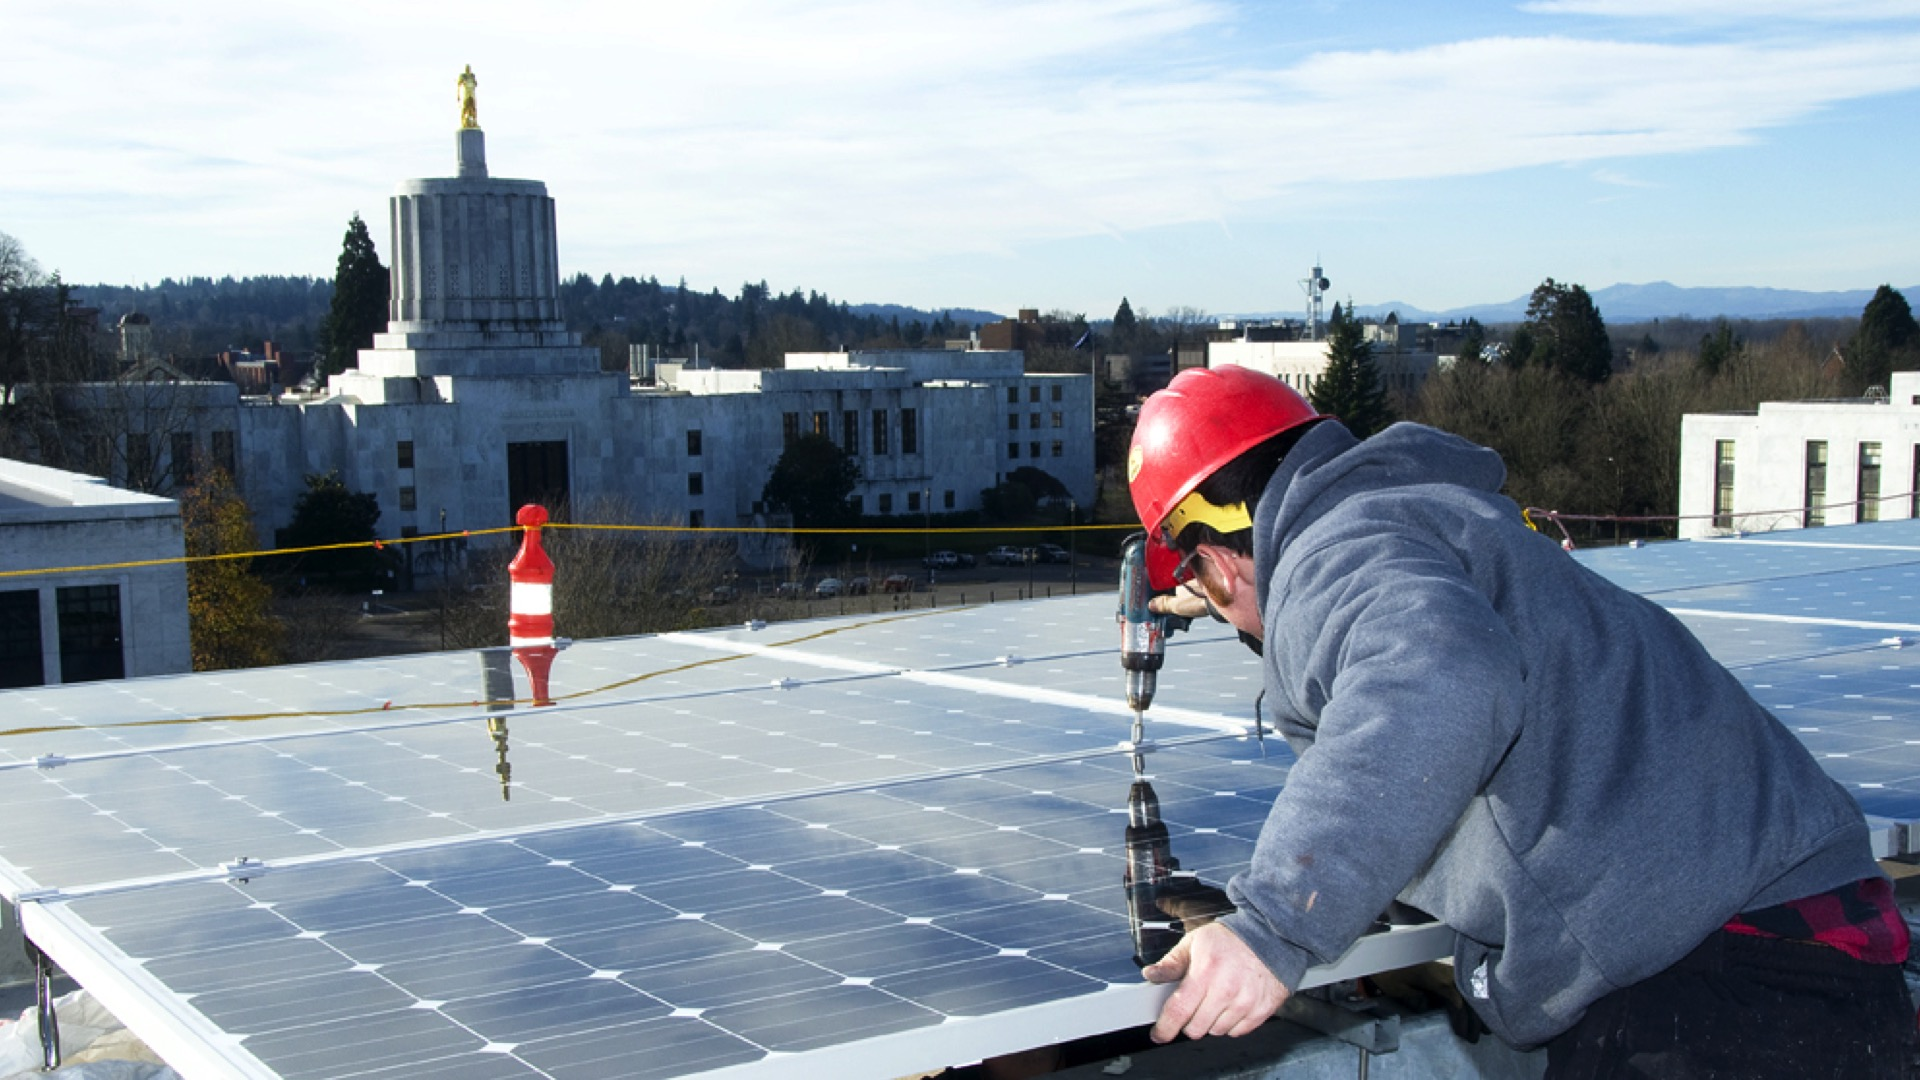 man installing solar panels on top of building